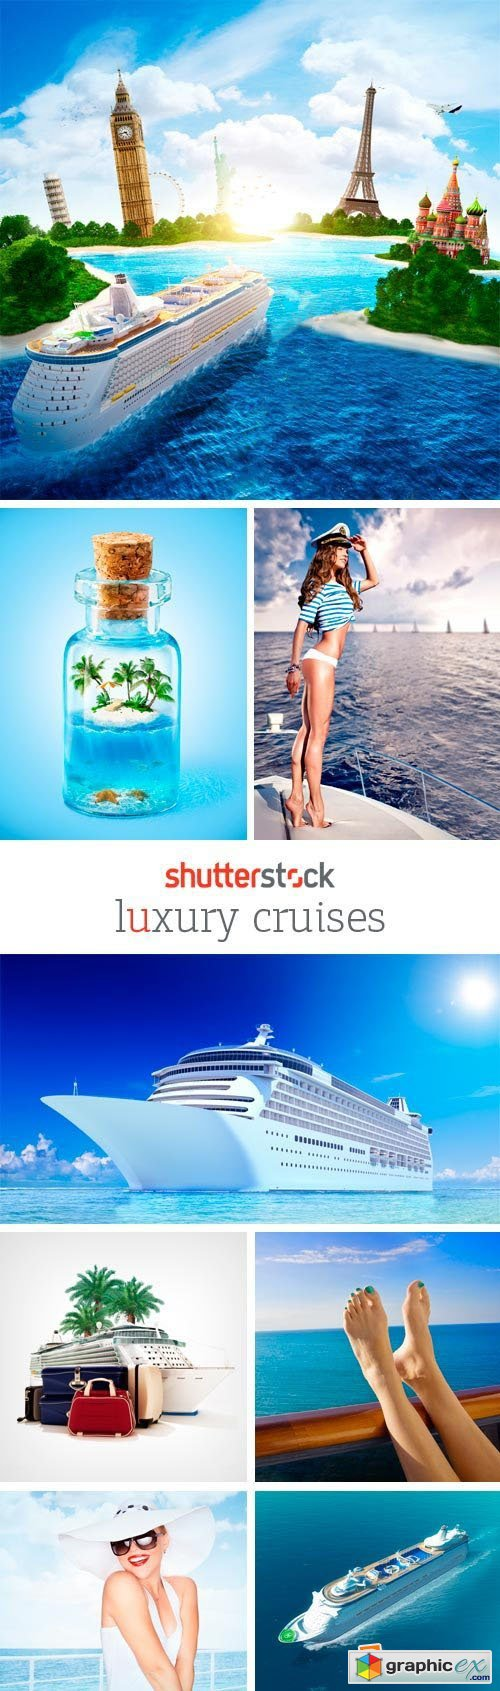 Amazing SS - Luxury Cruises 25xJPG